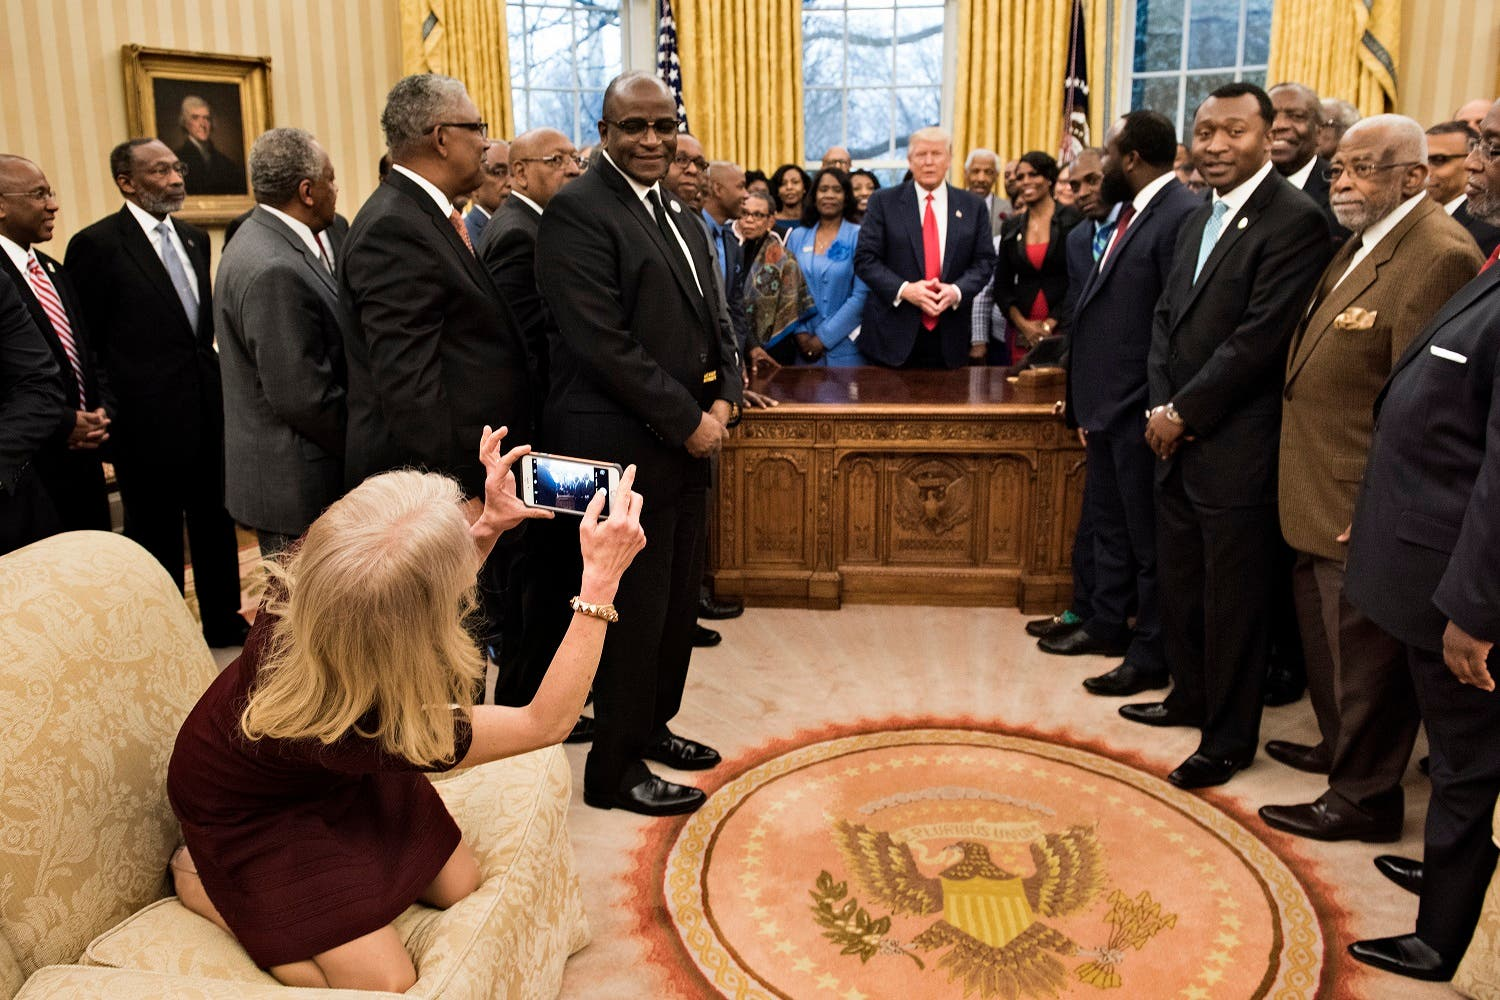 Counselor to the President Kellyanne Conway takes a photo as US President Donald Trump and leaders of historically black universities and colleges talk before a group photo in the Oval Office of the White House before a meeting with US Vice President Mike Pence February 27, 2017 in Washington, DC. (AFP)